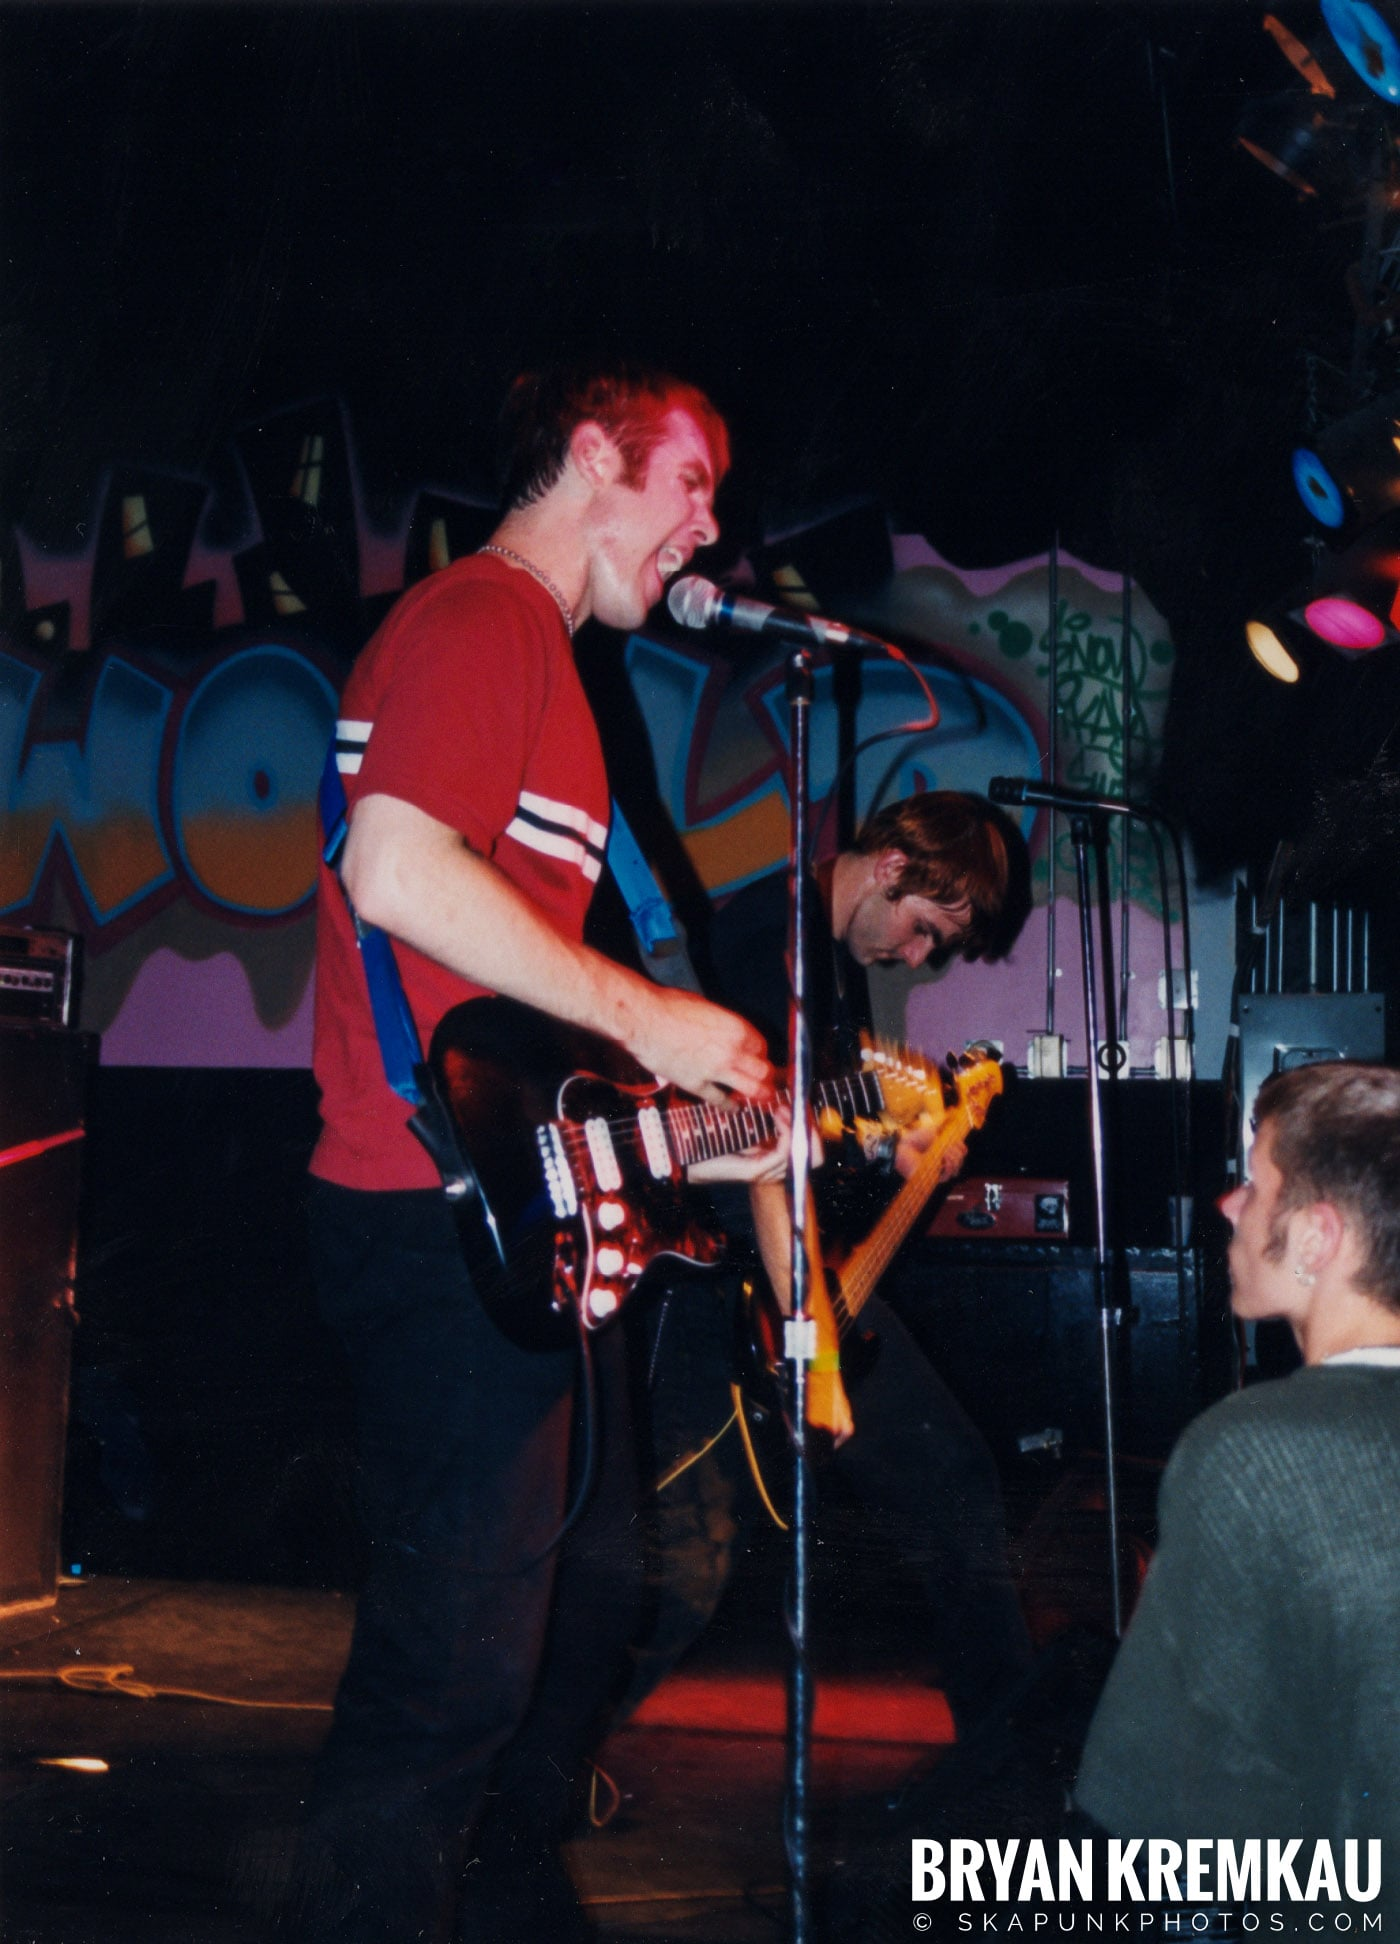 Animal Chin @ Skater's World, Wayne, NJ - 7.8.98 (5)